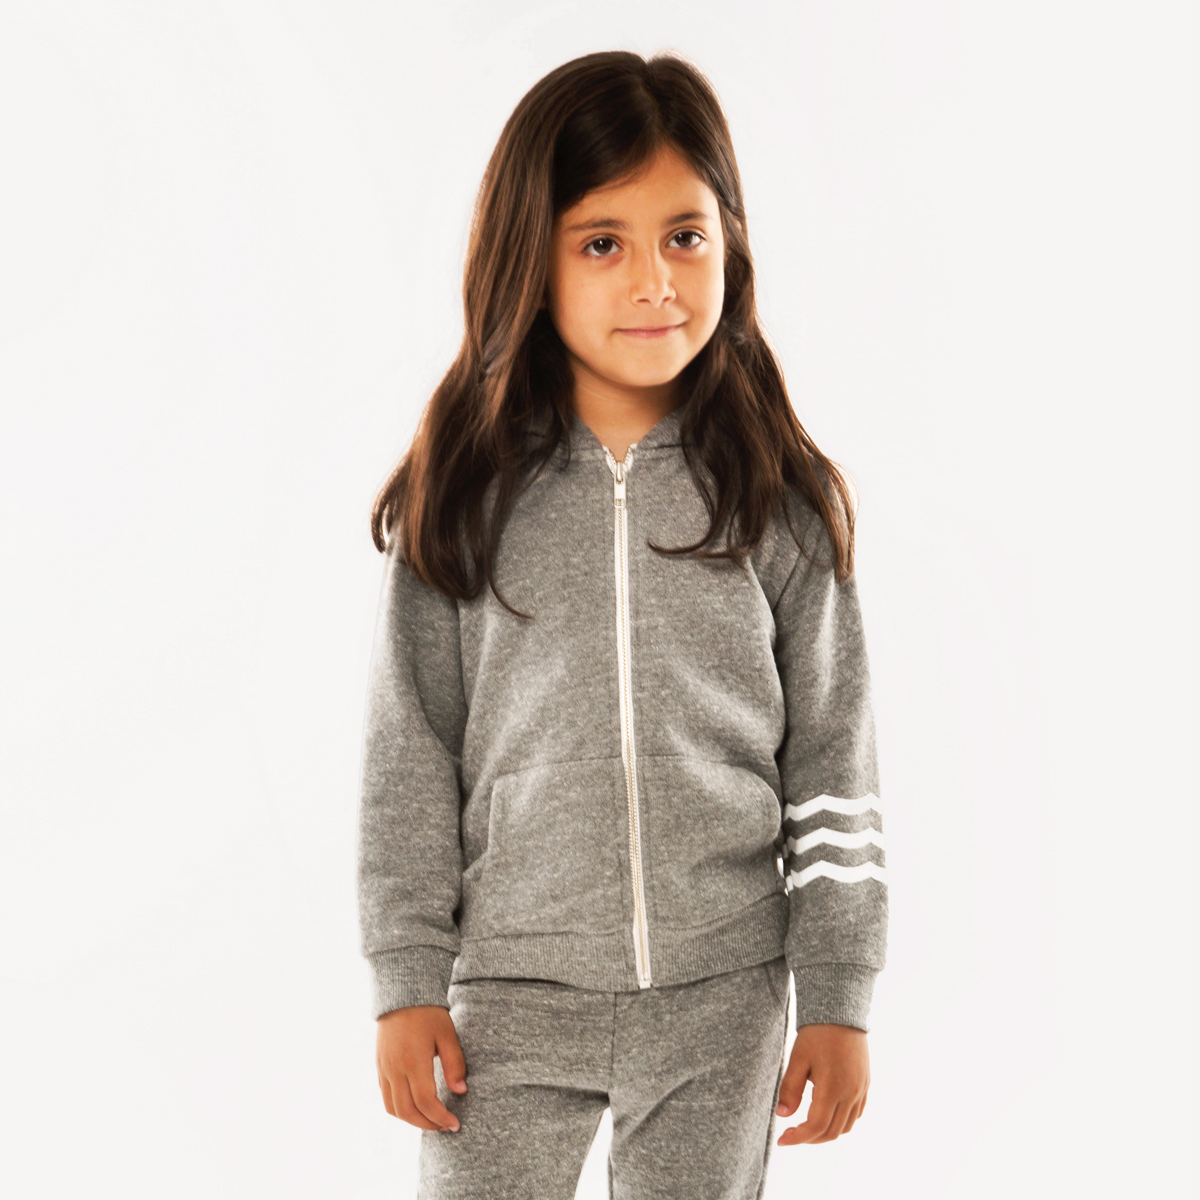 Soft Cozy Girls Boys Jersey Pant Udyi/&Jln-97 Home is Where The Dog is Unisex Kid Toddler Sweatpants